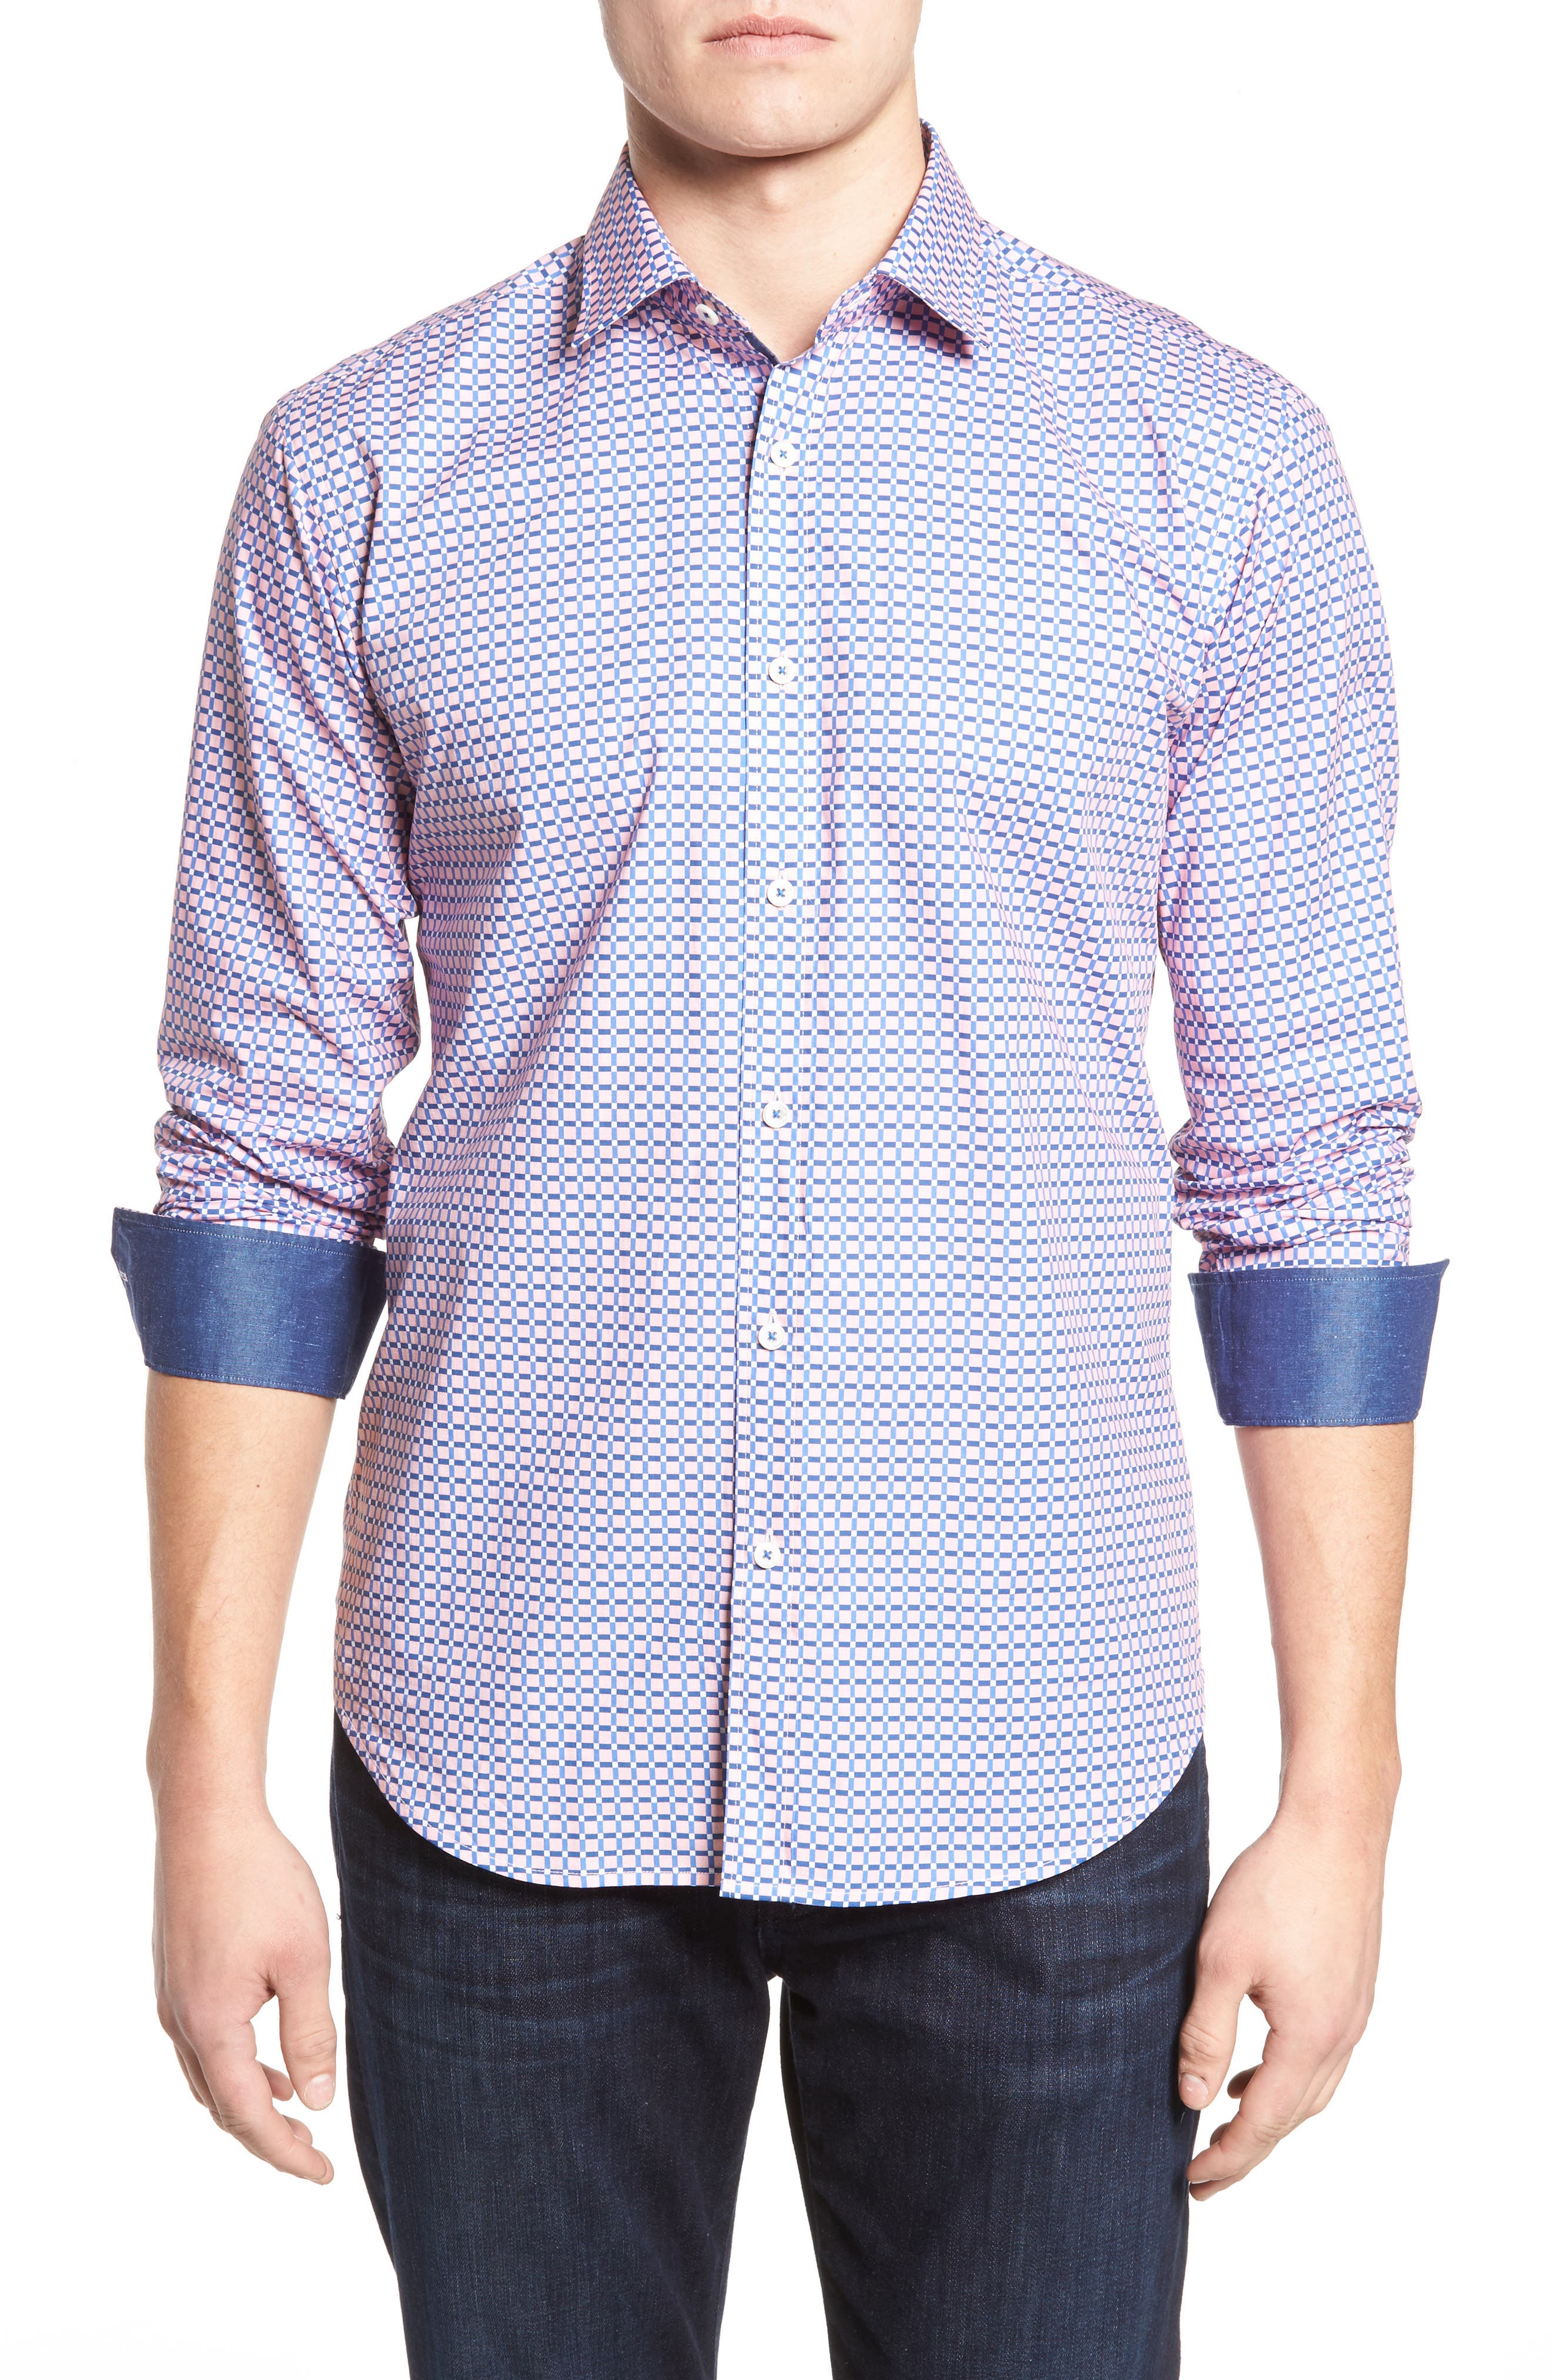 Alternate Image 1 Selected - Bugatchi Shaped Fit Grid Print Sport Shirt